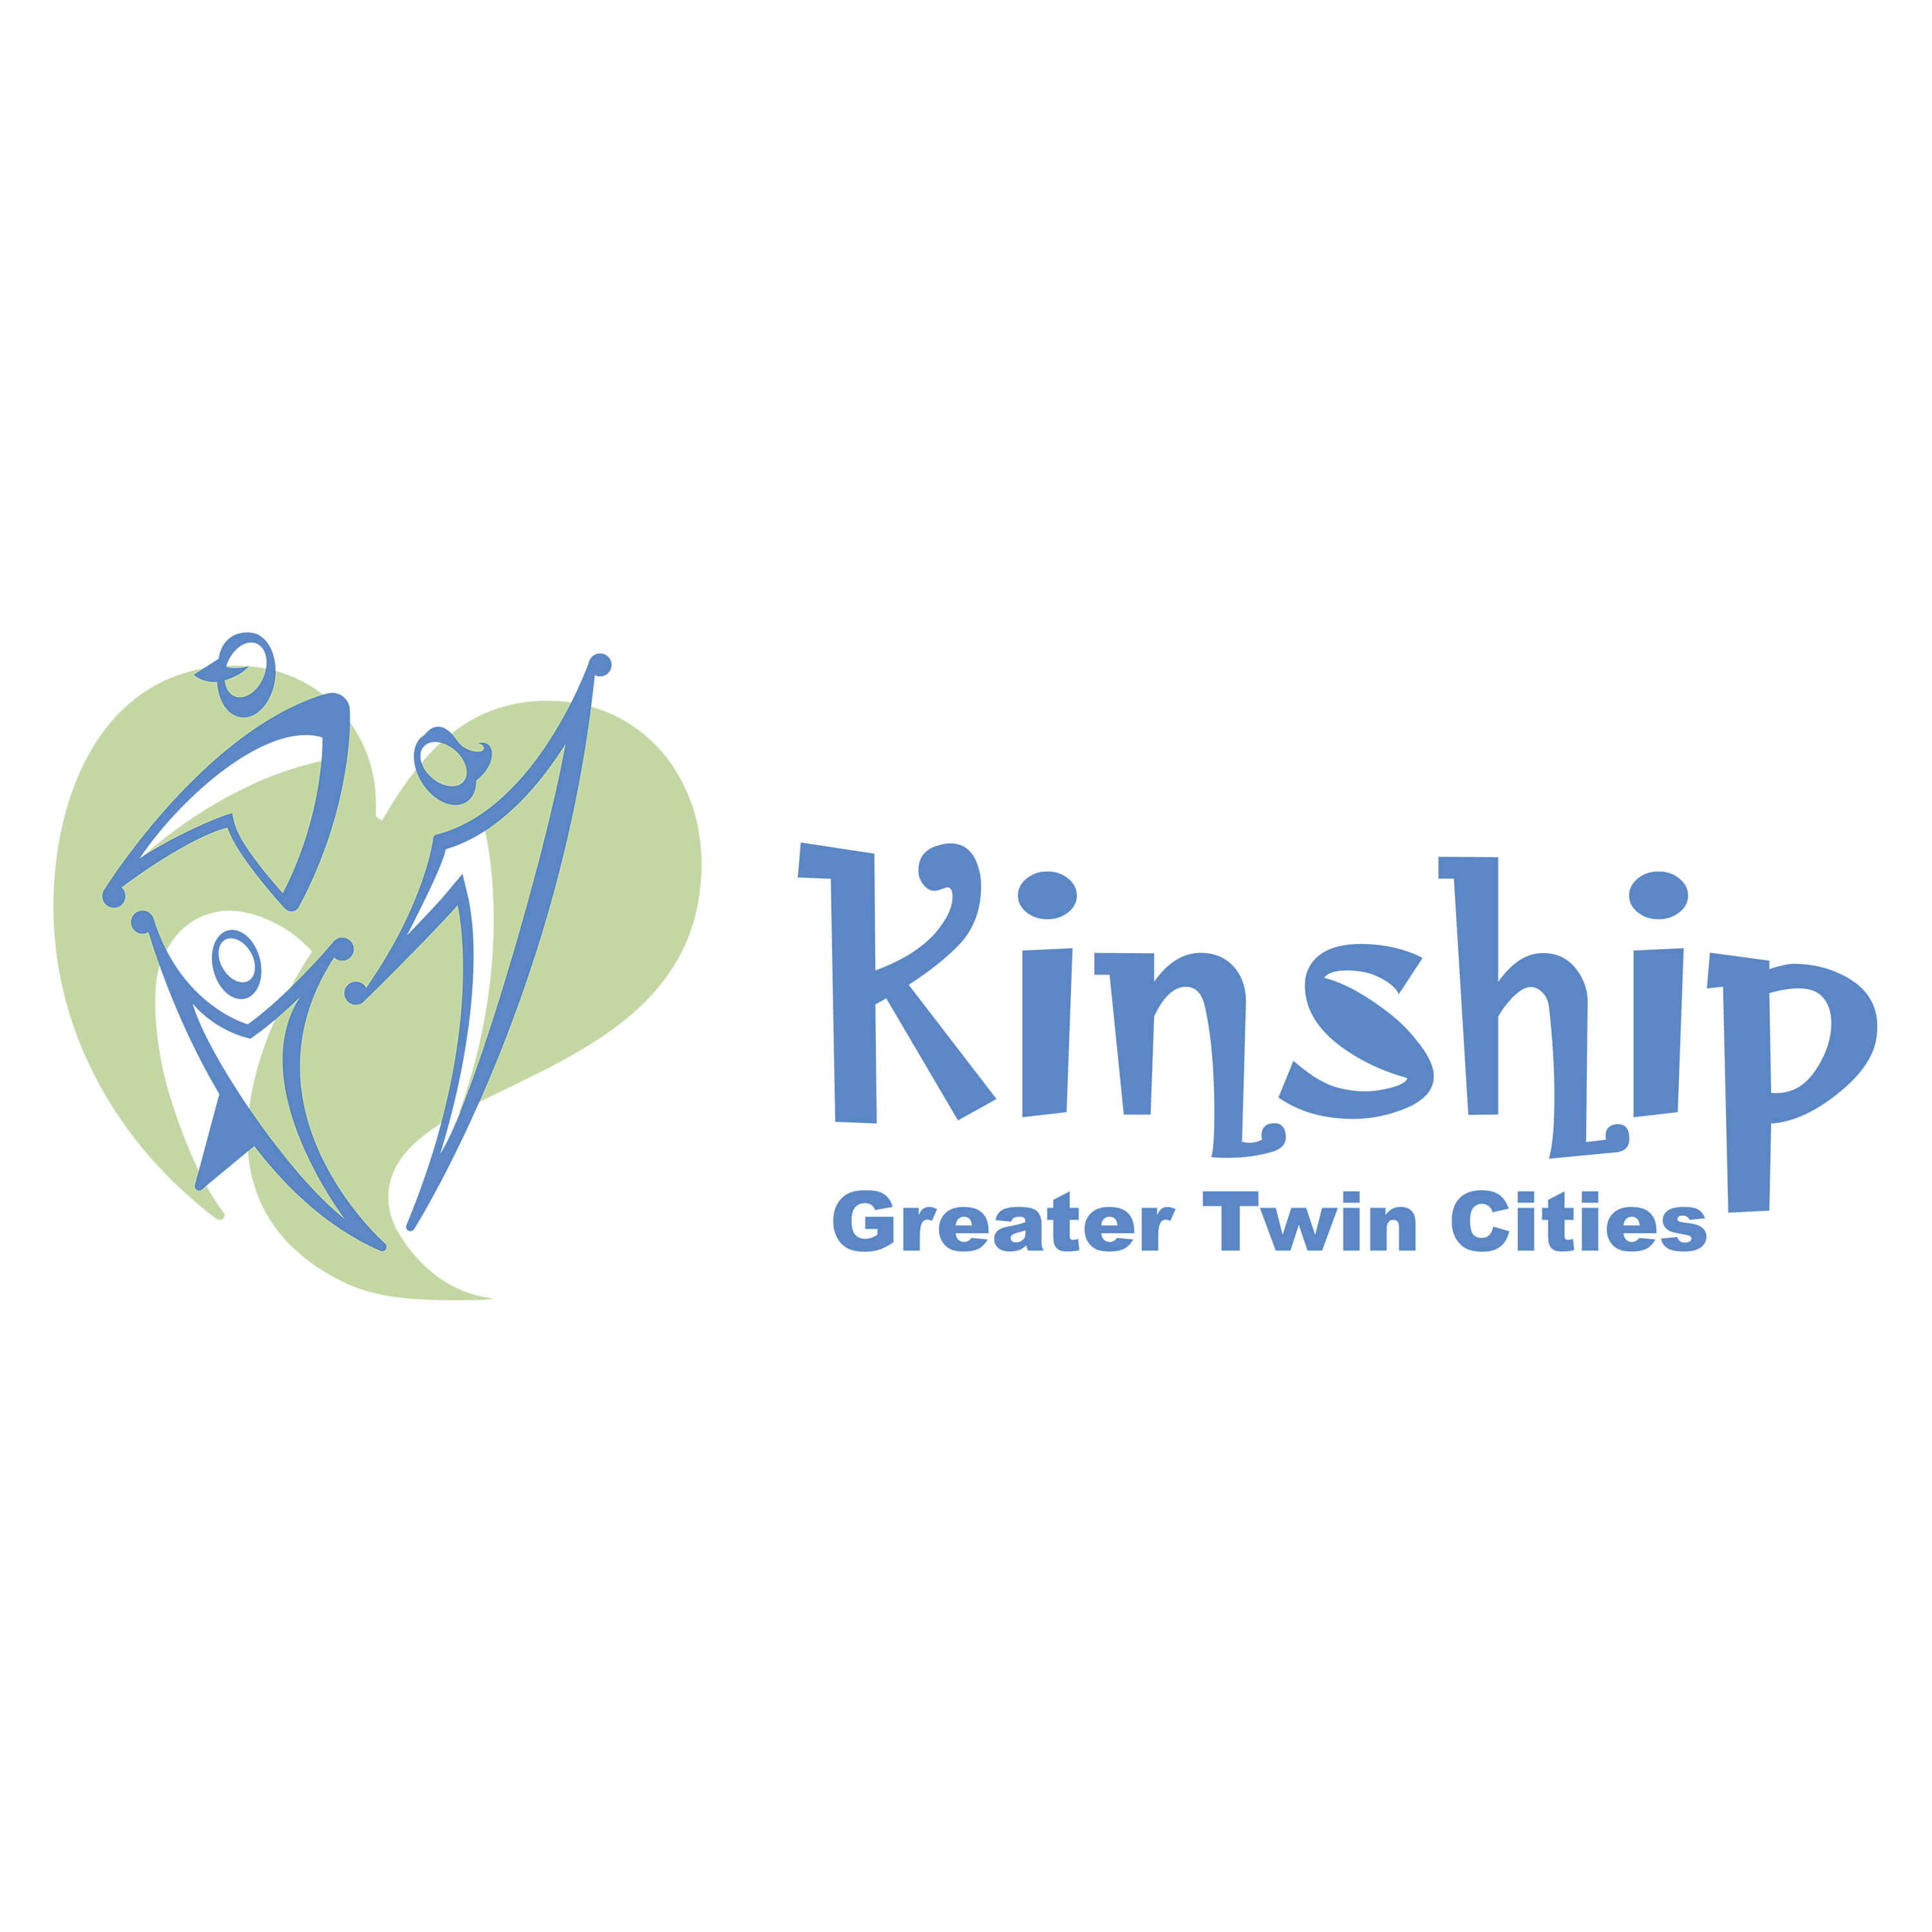 Kinship of the Greater Twin Cities